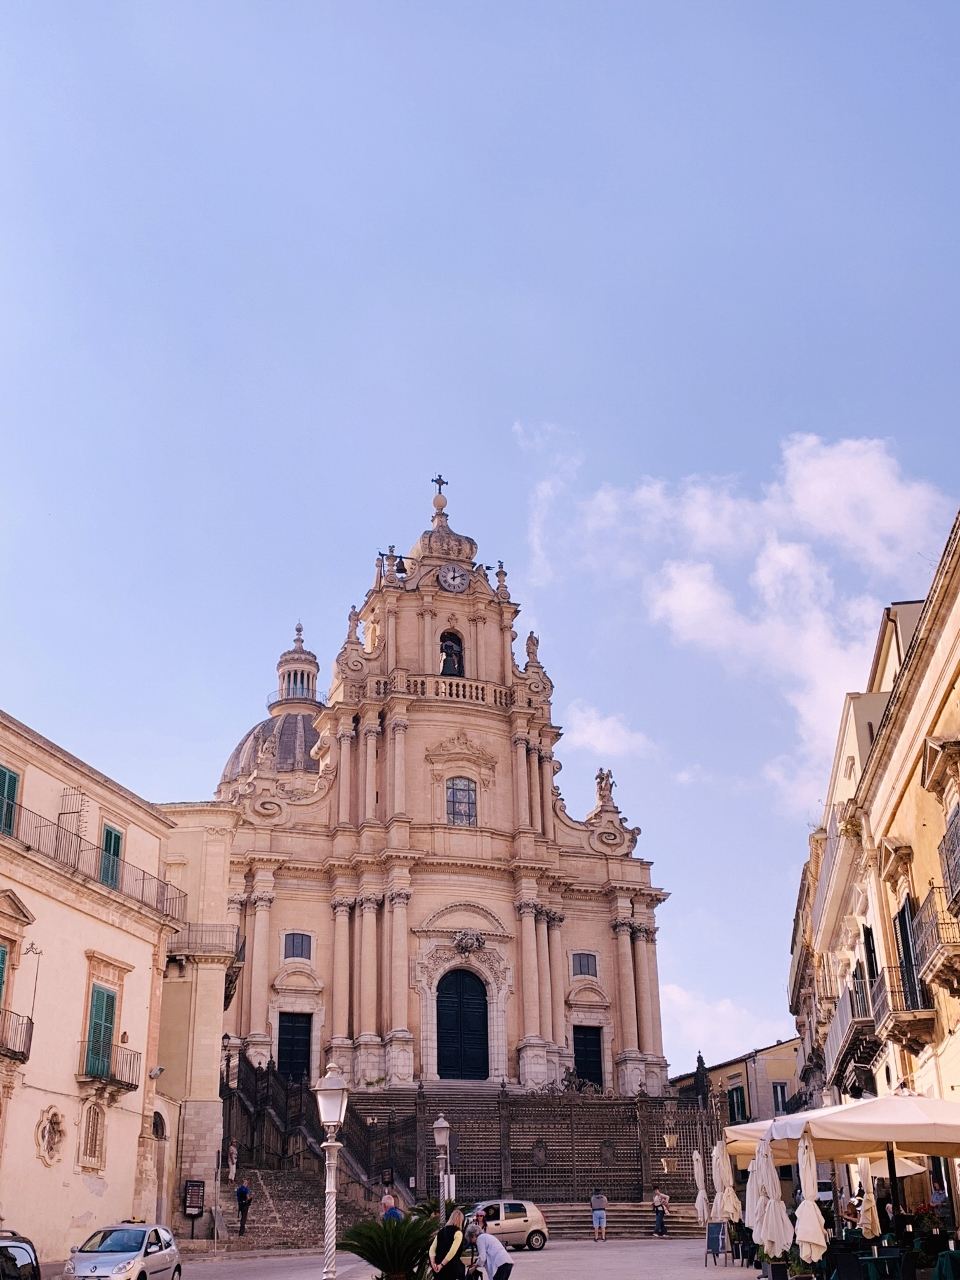 Travels to Sicily – Noto, Siracusa, Ragusa & Agrigento (Part 2 of 3) Image 19